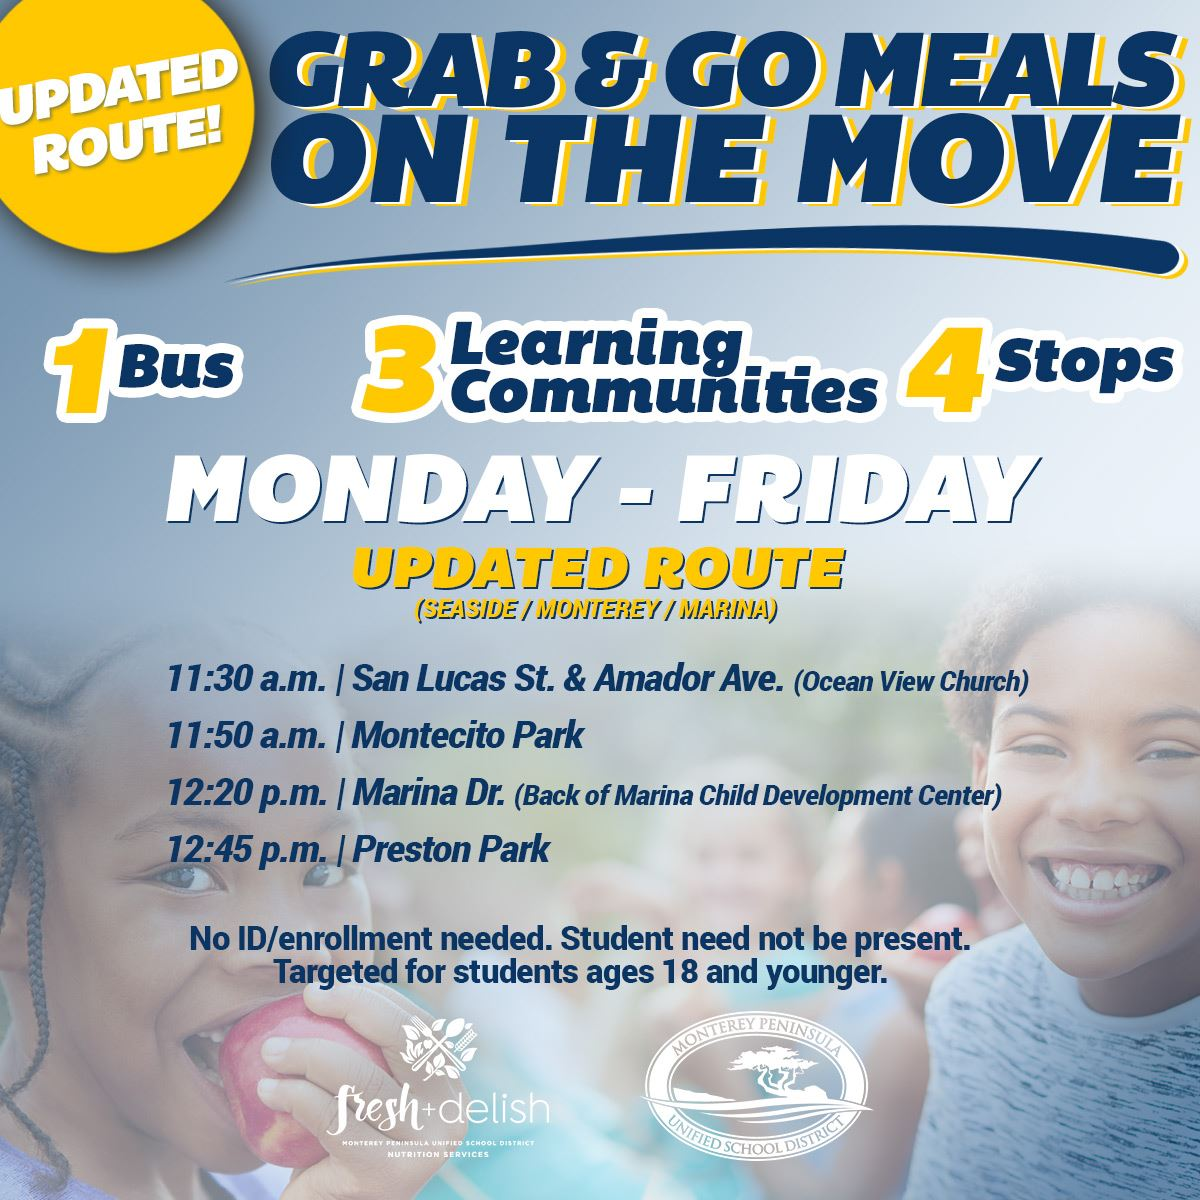 dec 1 meals on the move route